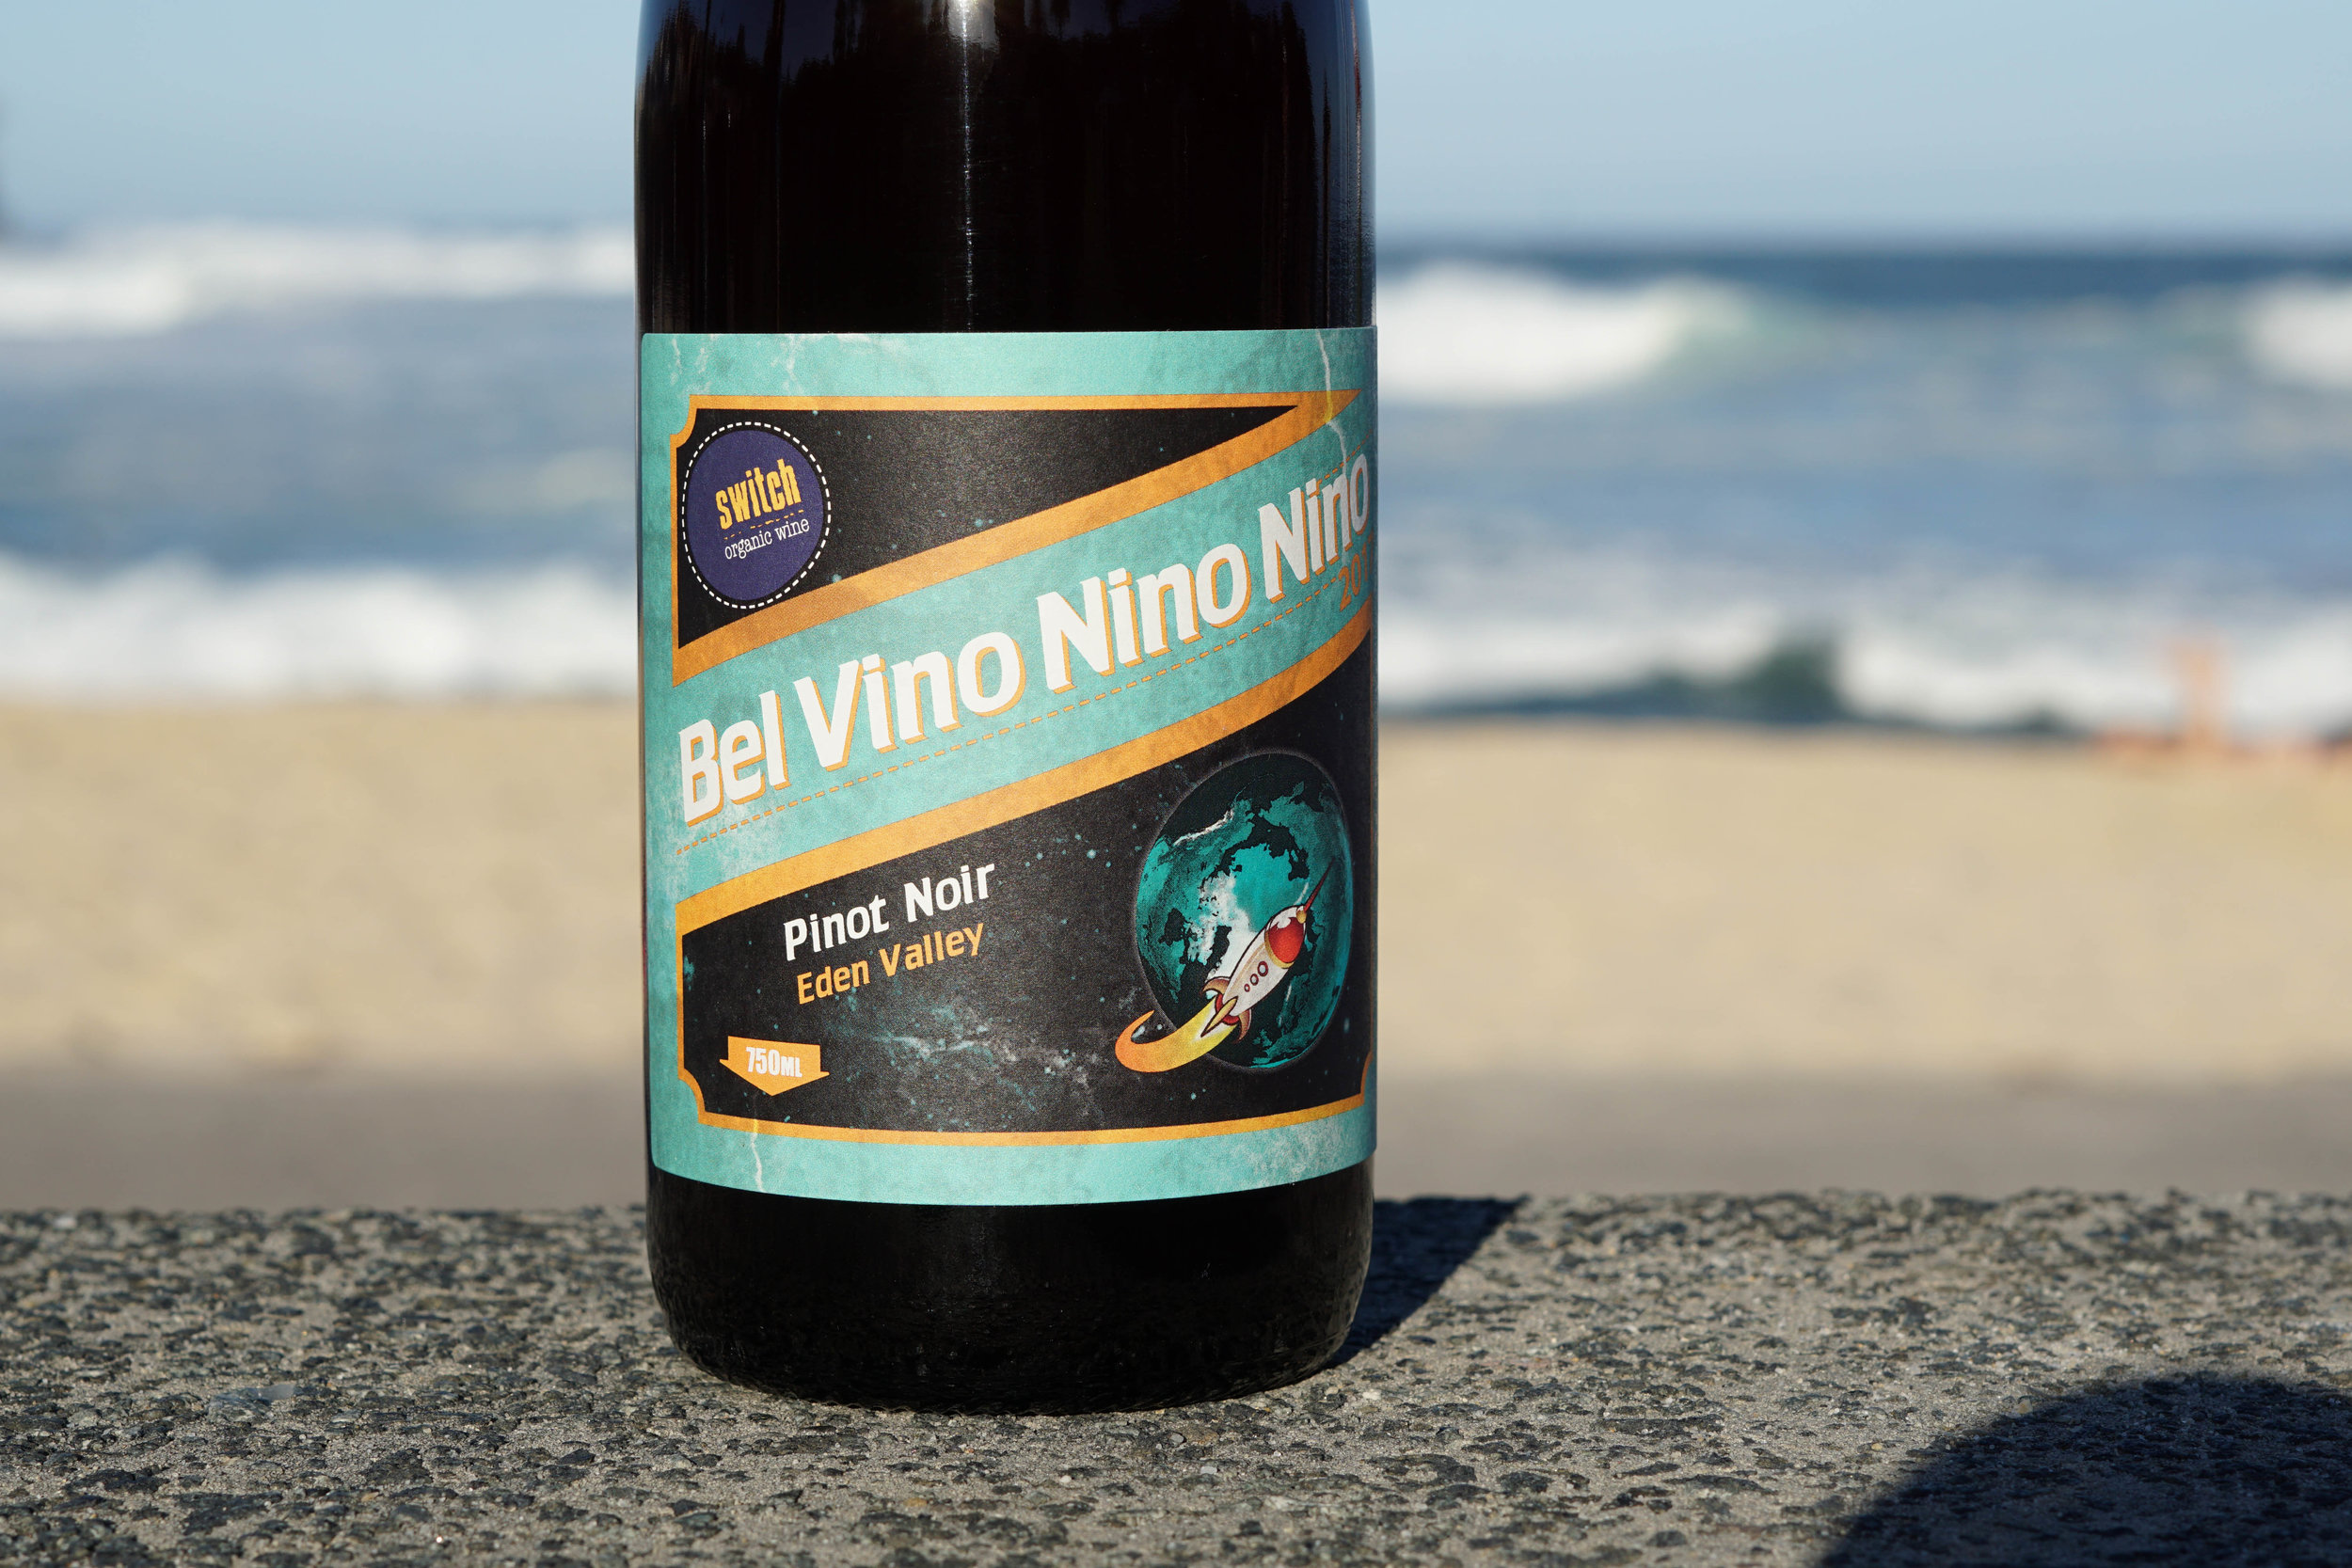 2017 ~ BEL VINO NINO NINO - Certified organic approx 1500 bottles produced.  After selling out too darn fast last year, the Bel Vino Nino Nino is back and as bright as ever...  Flavours of cherry, raspberry and wild violets lifted with an undercurrent of coffee and drying tobacco leaves.The palate flows with flavours of cherry and forest berries directed by tight acidity to a long finish.  Whole bunches of hand-picked Eden Valley Pinot Noir sourced and handpicked from the Marneden Springs vineyard at 400m elevation on brown sandy loam with partial quartz matter. Half of the production was carbonic macerated in 200kg parcels for two weeks, the other half was made with approximately 50% whole bunch ferment and from 4 to 14 days on skins, small batch ferments and each ferment is assessed on its own merits as to when it's to pressed to barrel for a 9 month maturation period.  Bottled without filtration, no finings and small doses of sulphur before closure. 40mg/L total SO2